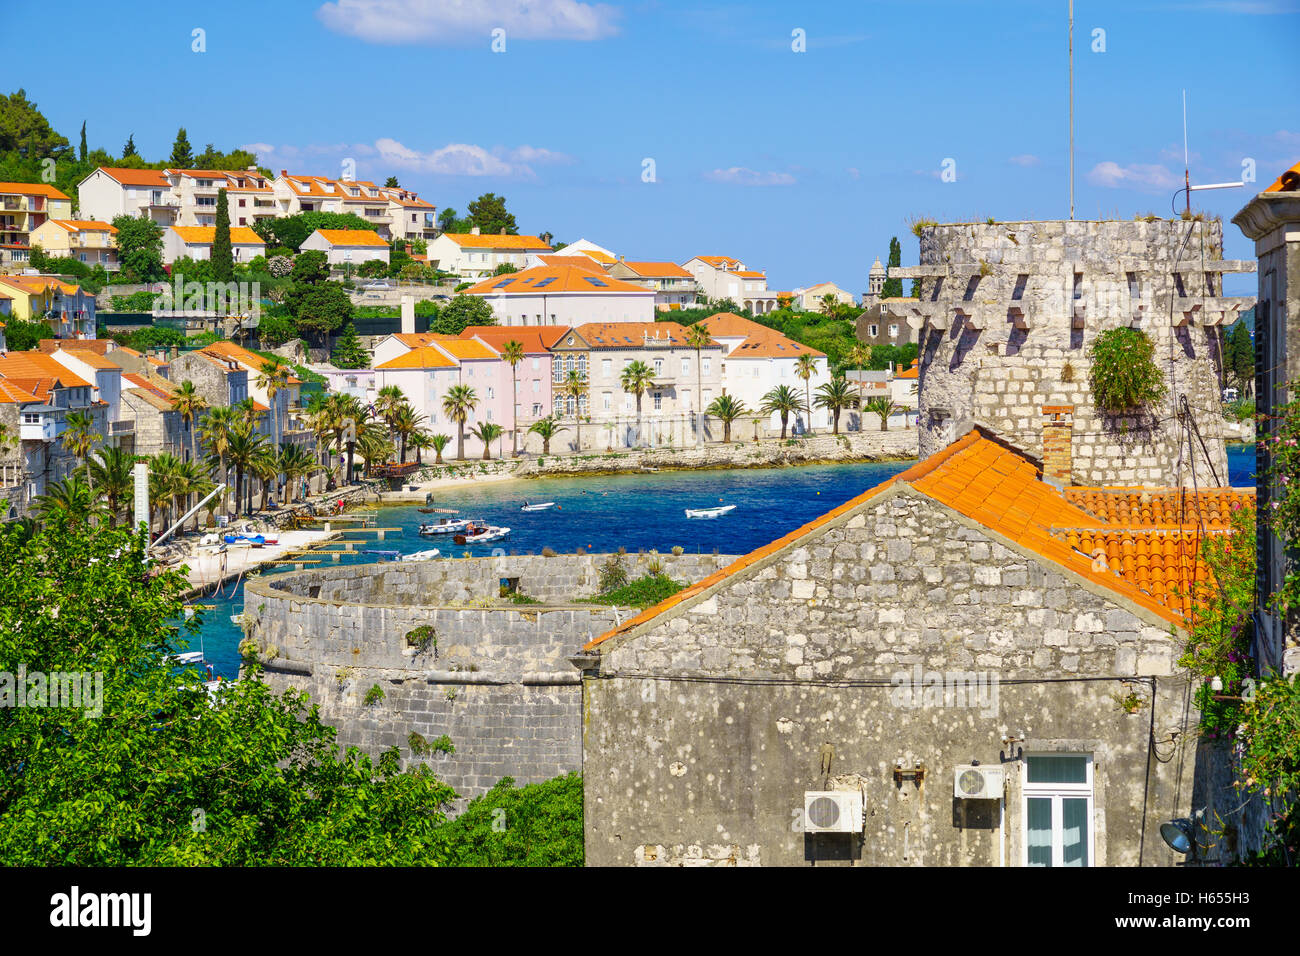 KORCULA, CROATIA - JUNE 26, 2015: Scene of the old town, with The Small Governor Tower, the bay, boats, locals and - Stock Image